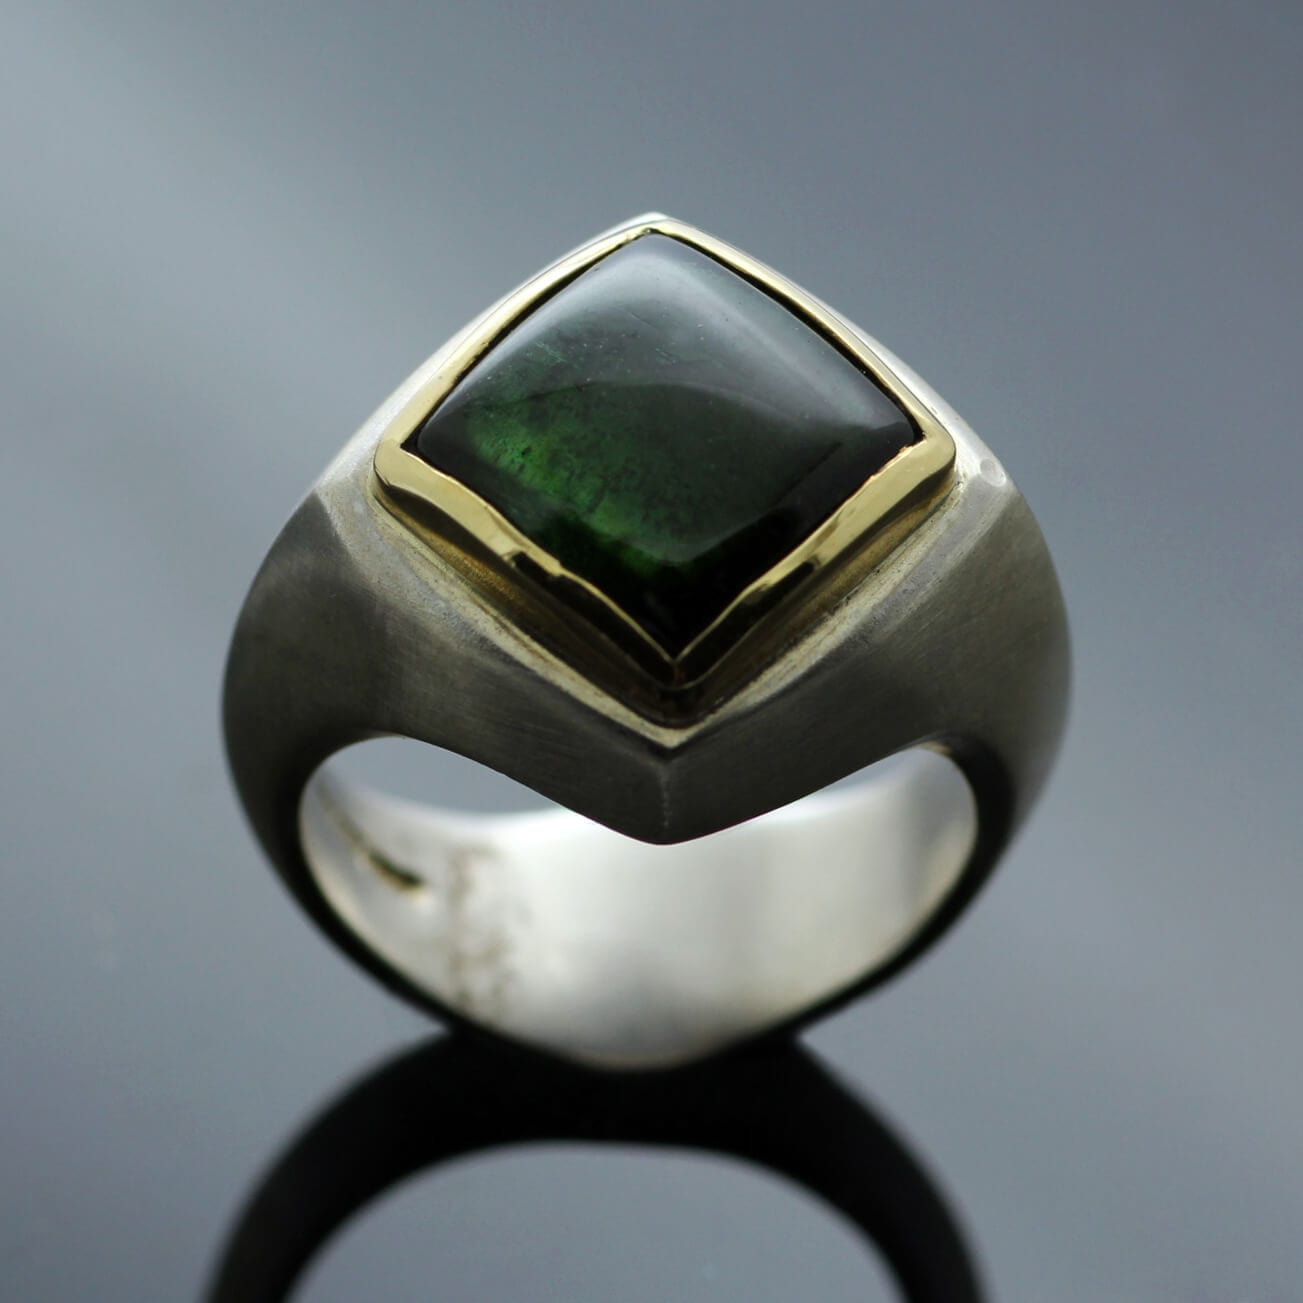 Tourmaline gemstone Abbey ring by Julian Stephens